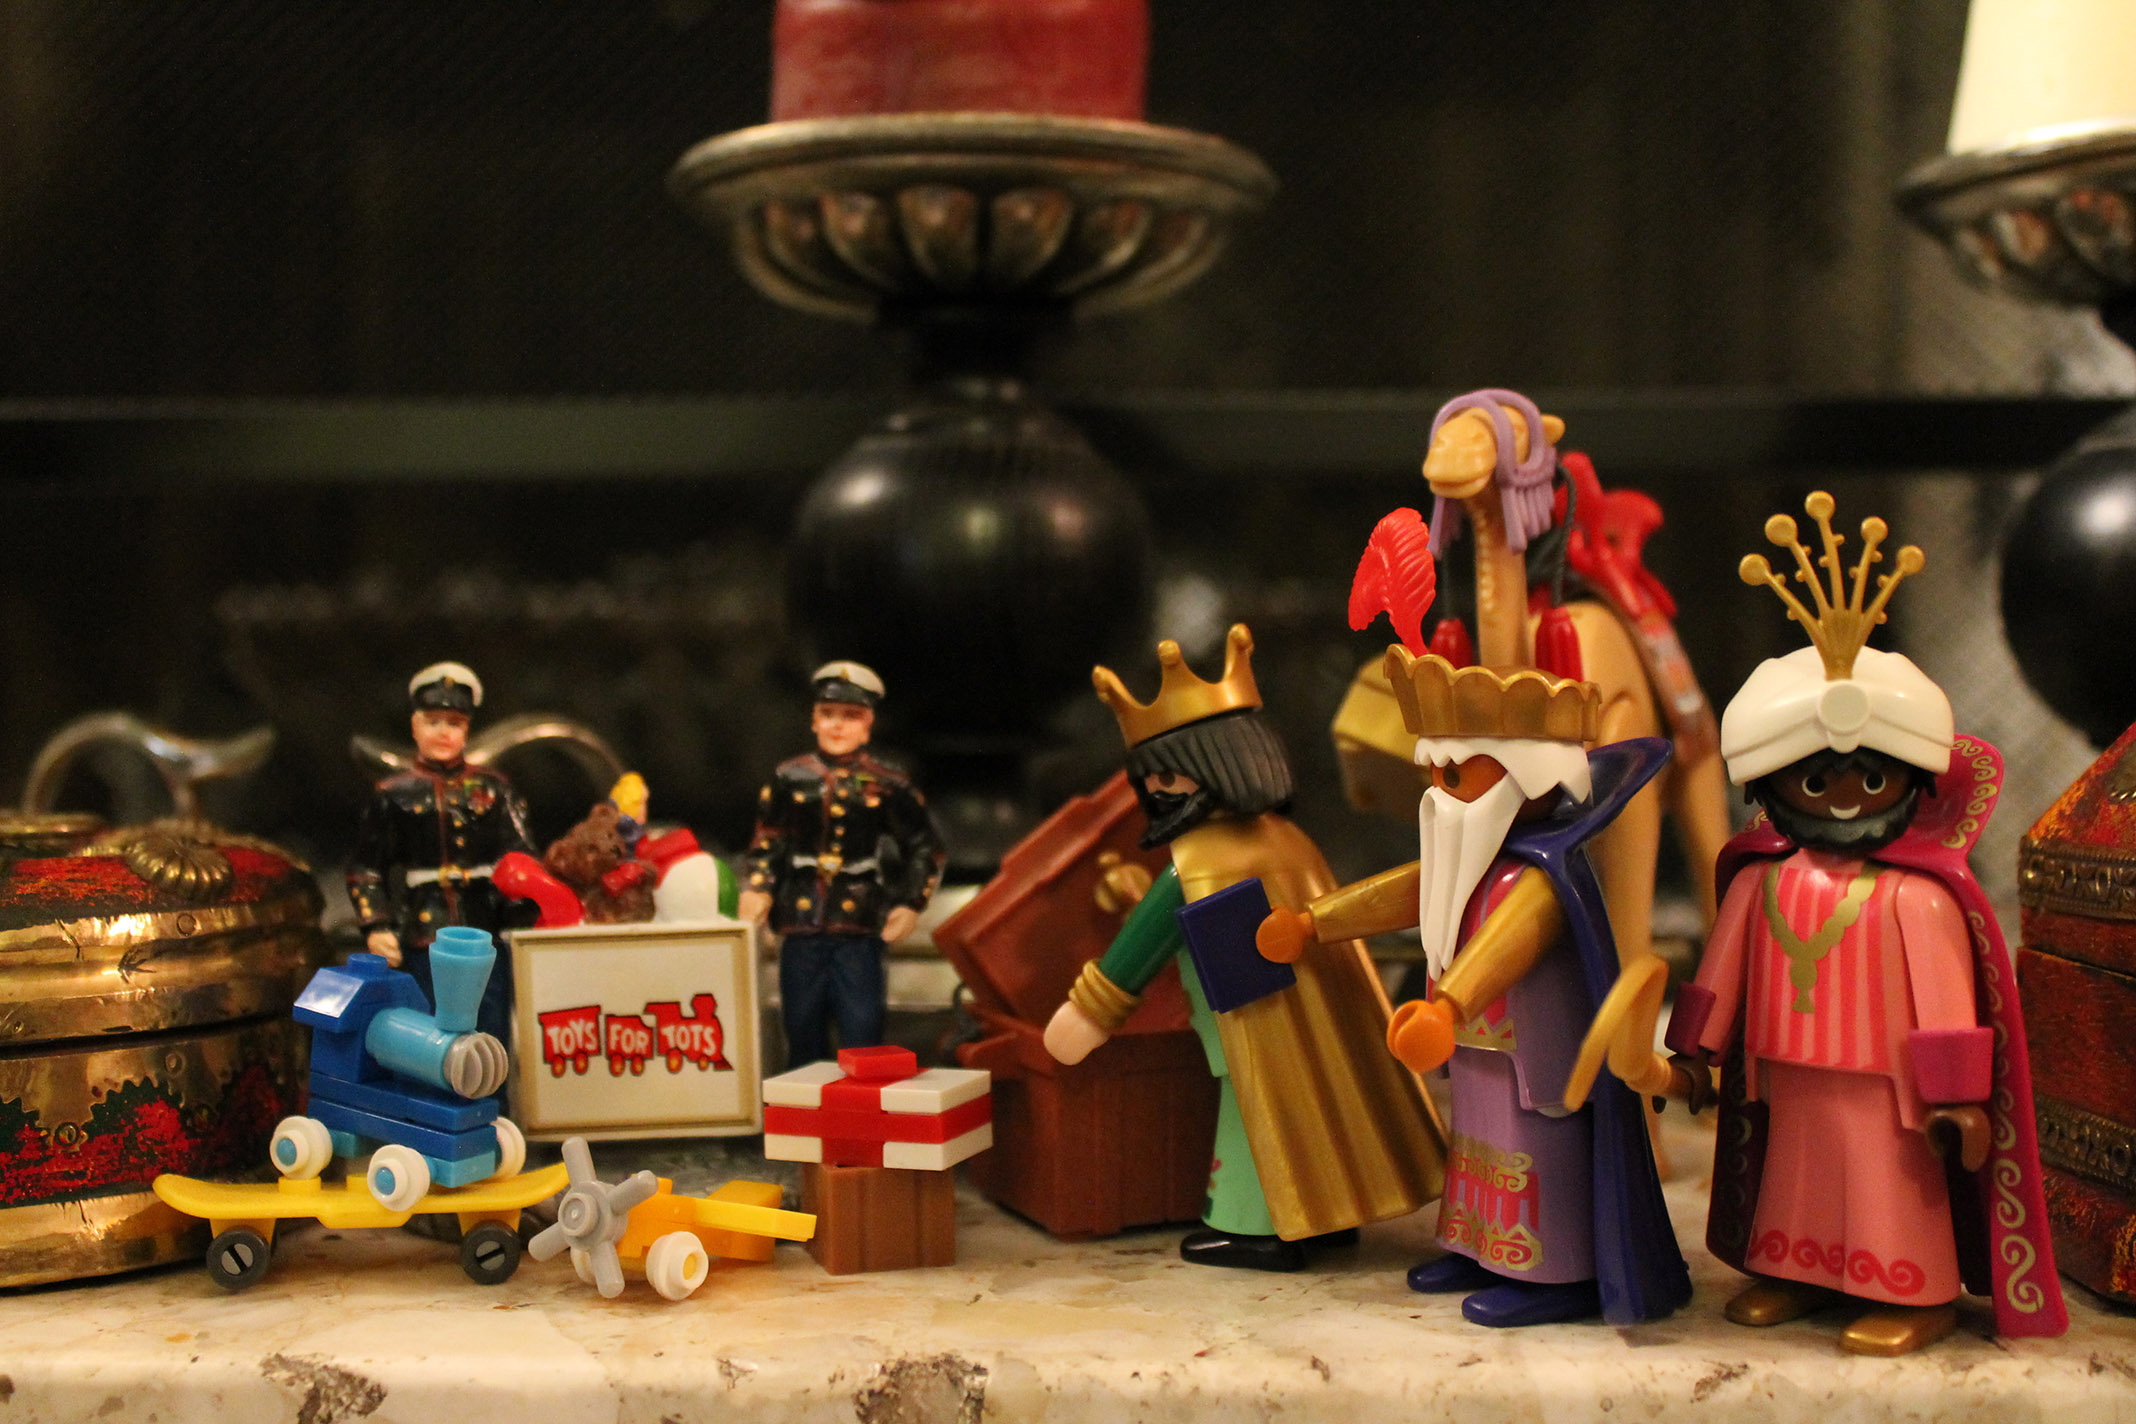 The wisemen give to Toys for Tots.